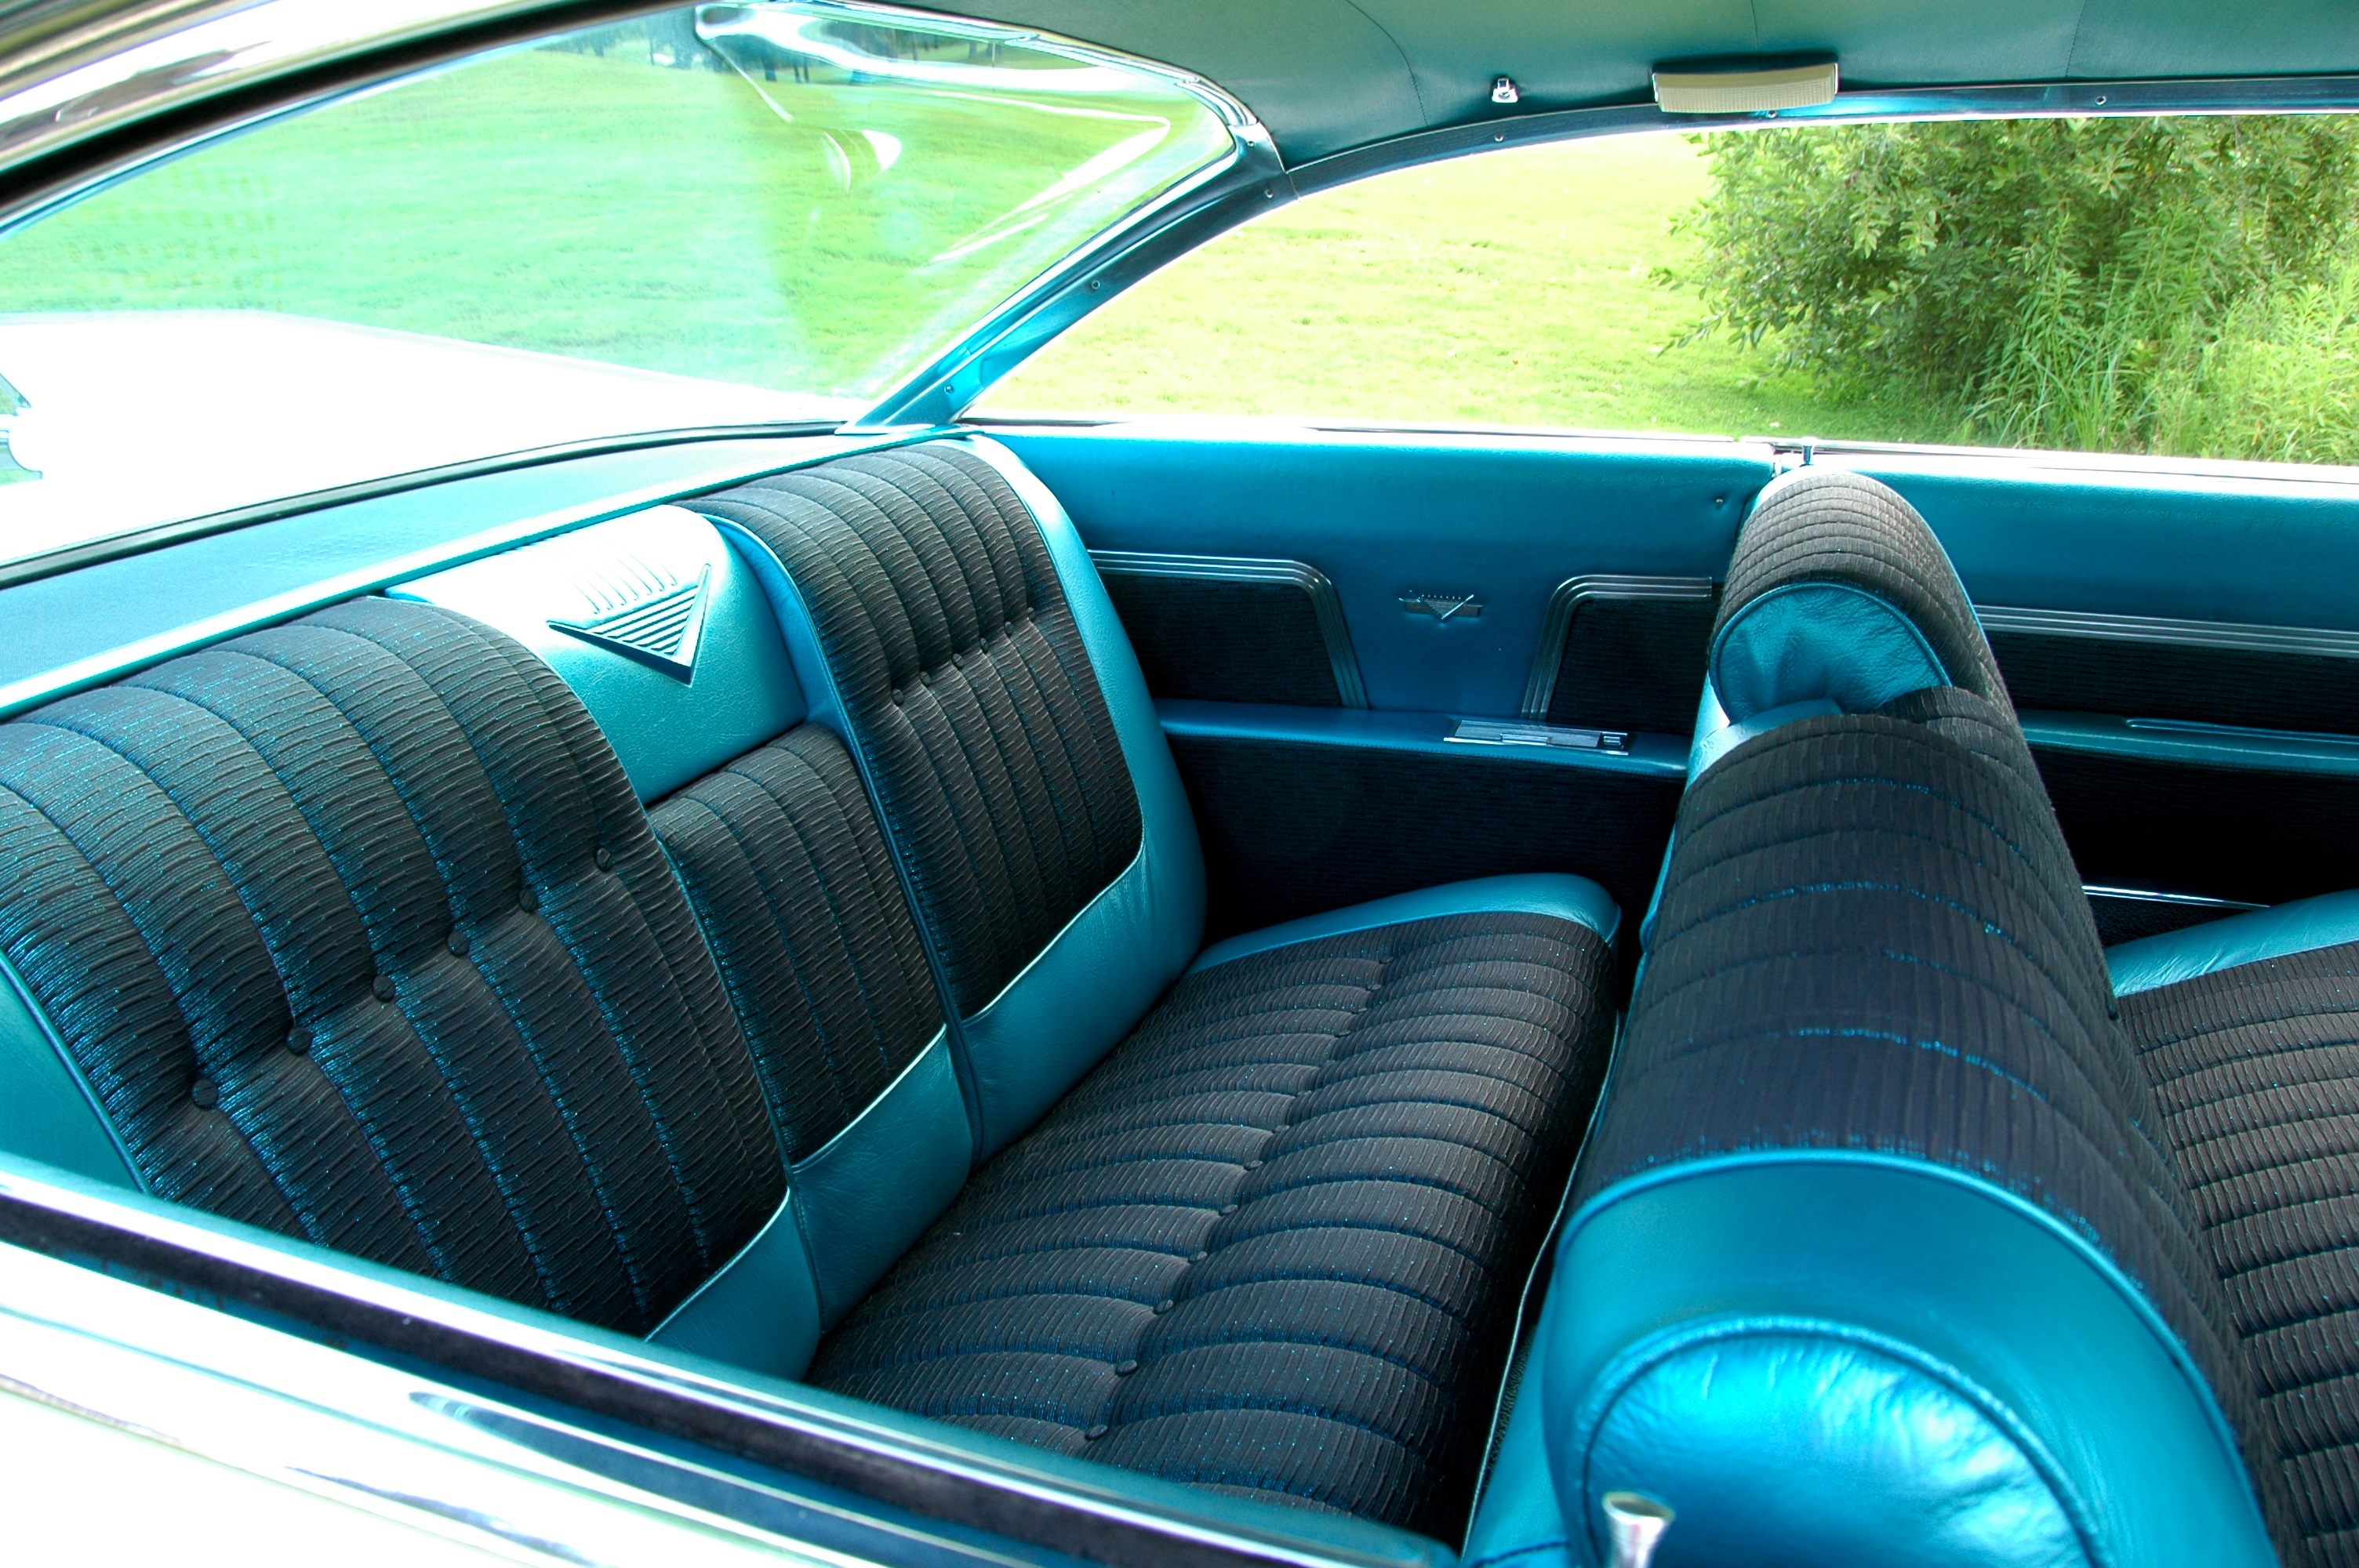 seat new look upholstery htm in haymarket interior auto leather northern va reupholster car tan